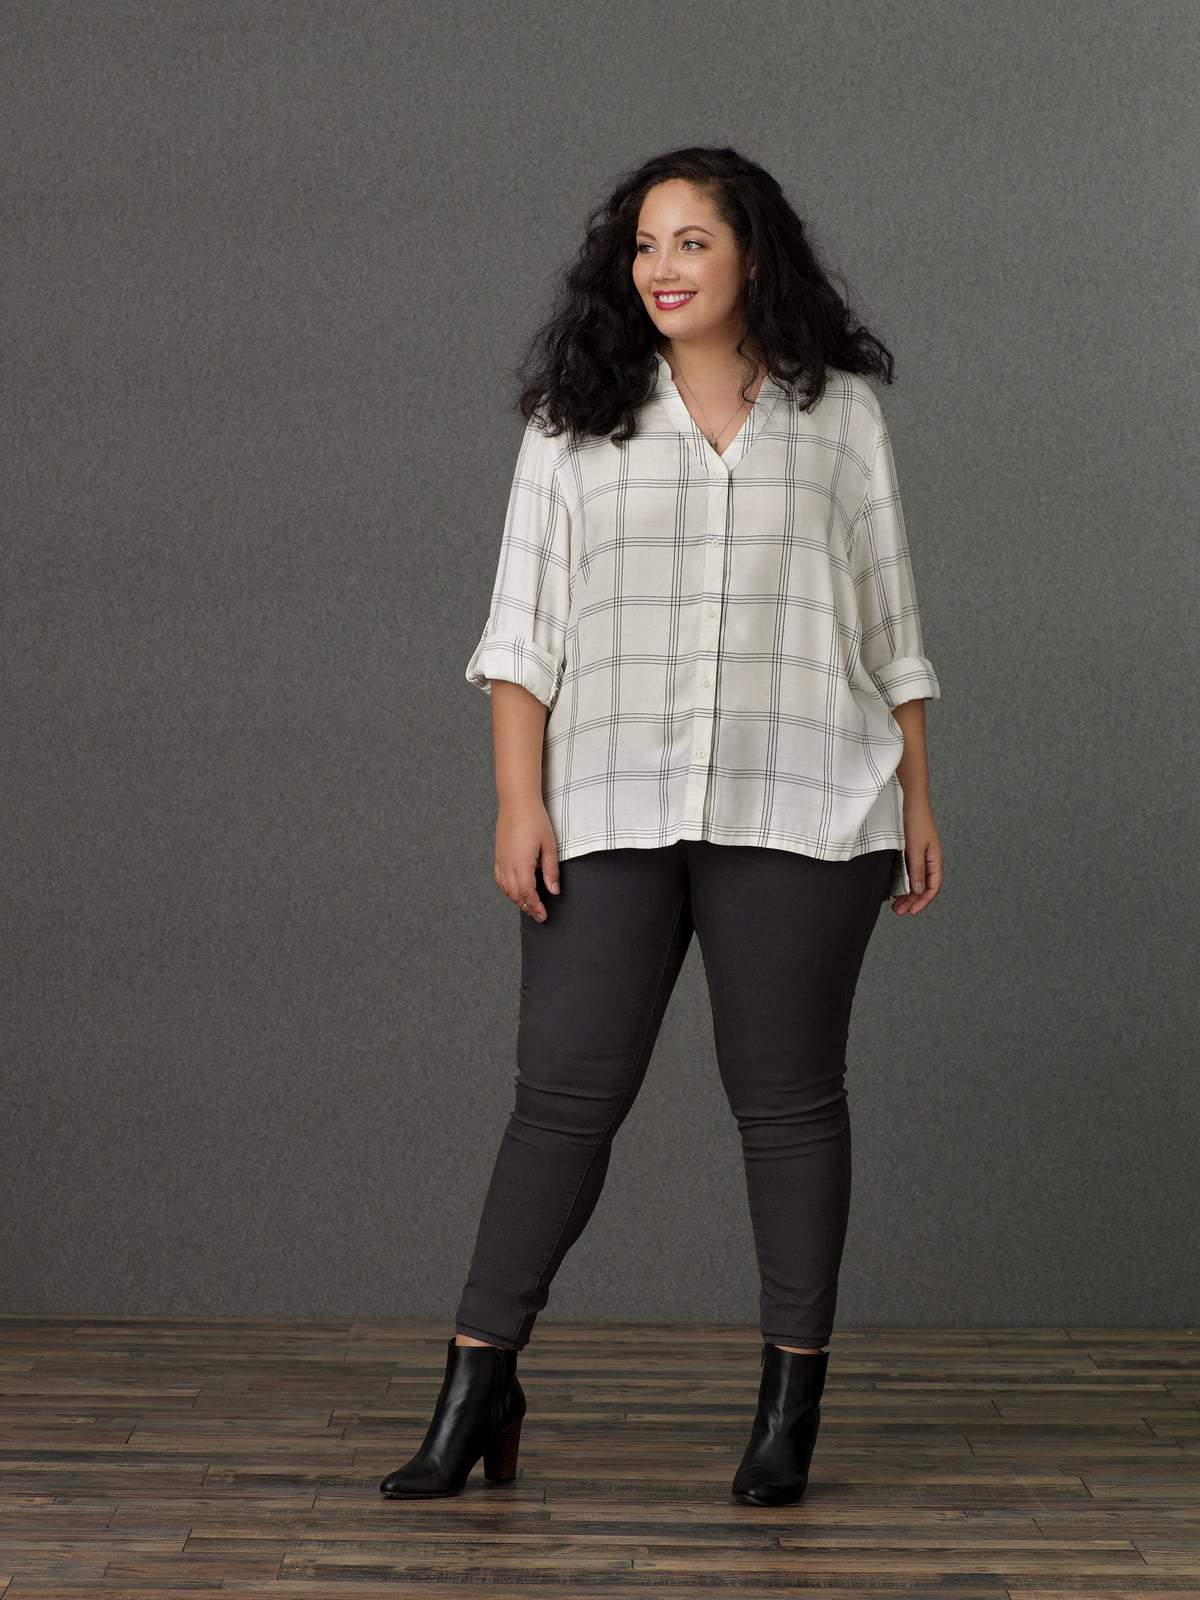 Sears Simply Emma Plus Size White Windowpane Blouse and Jeggings